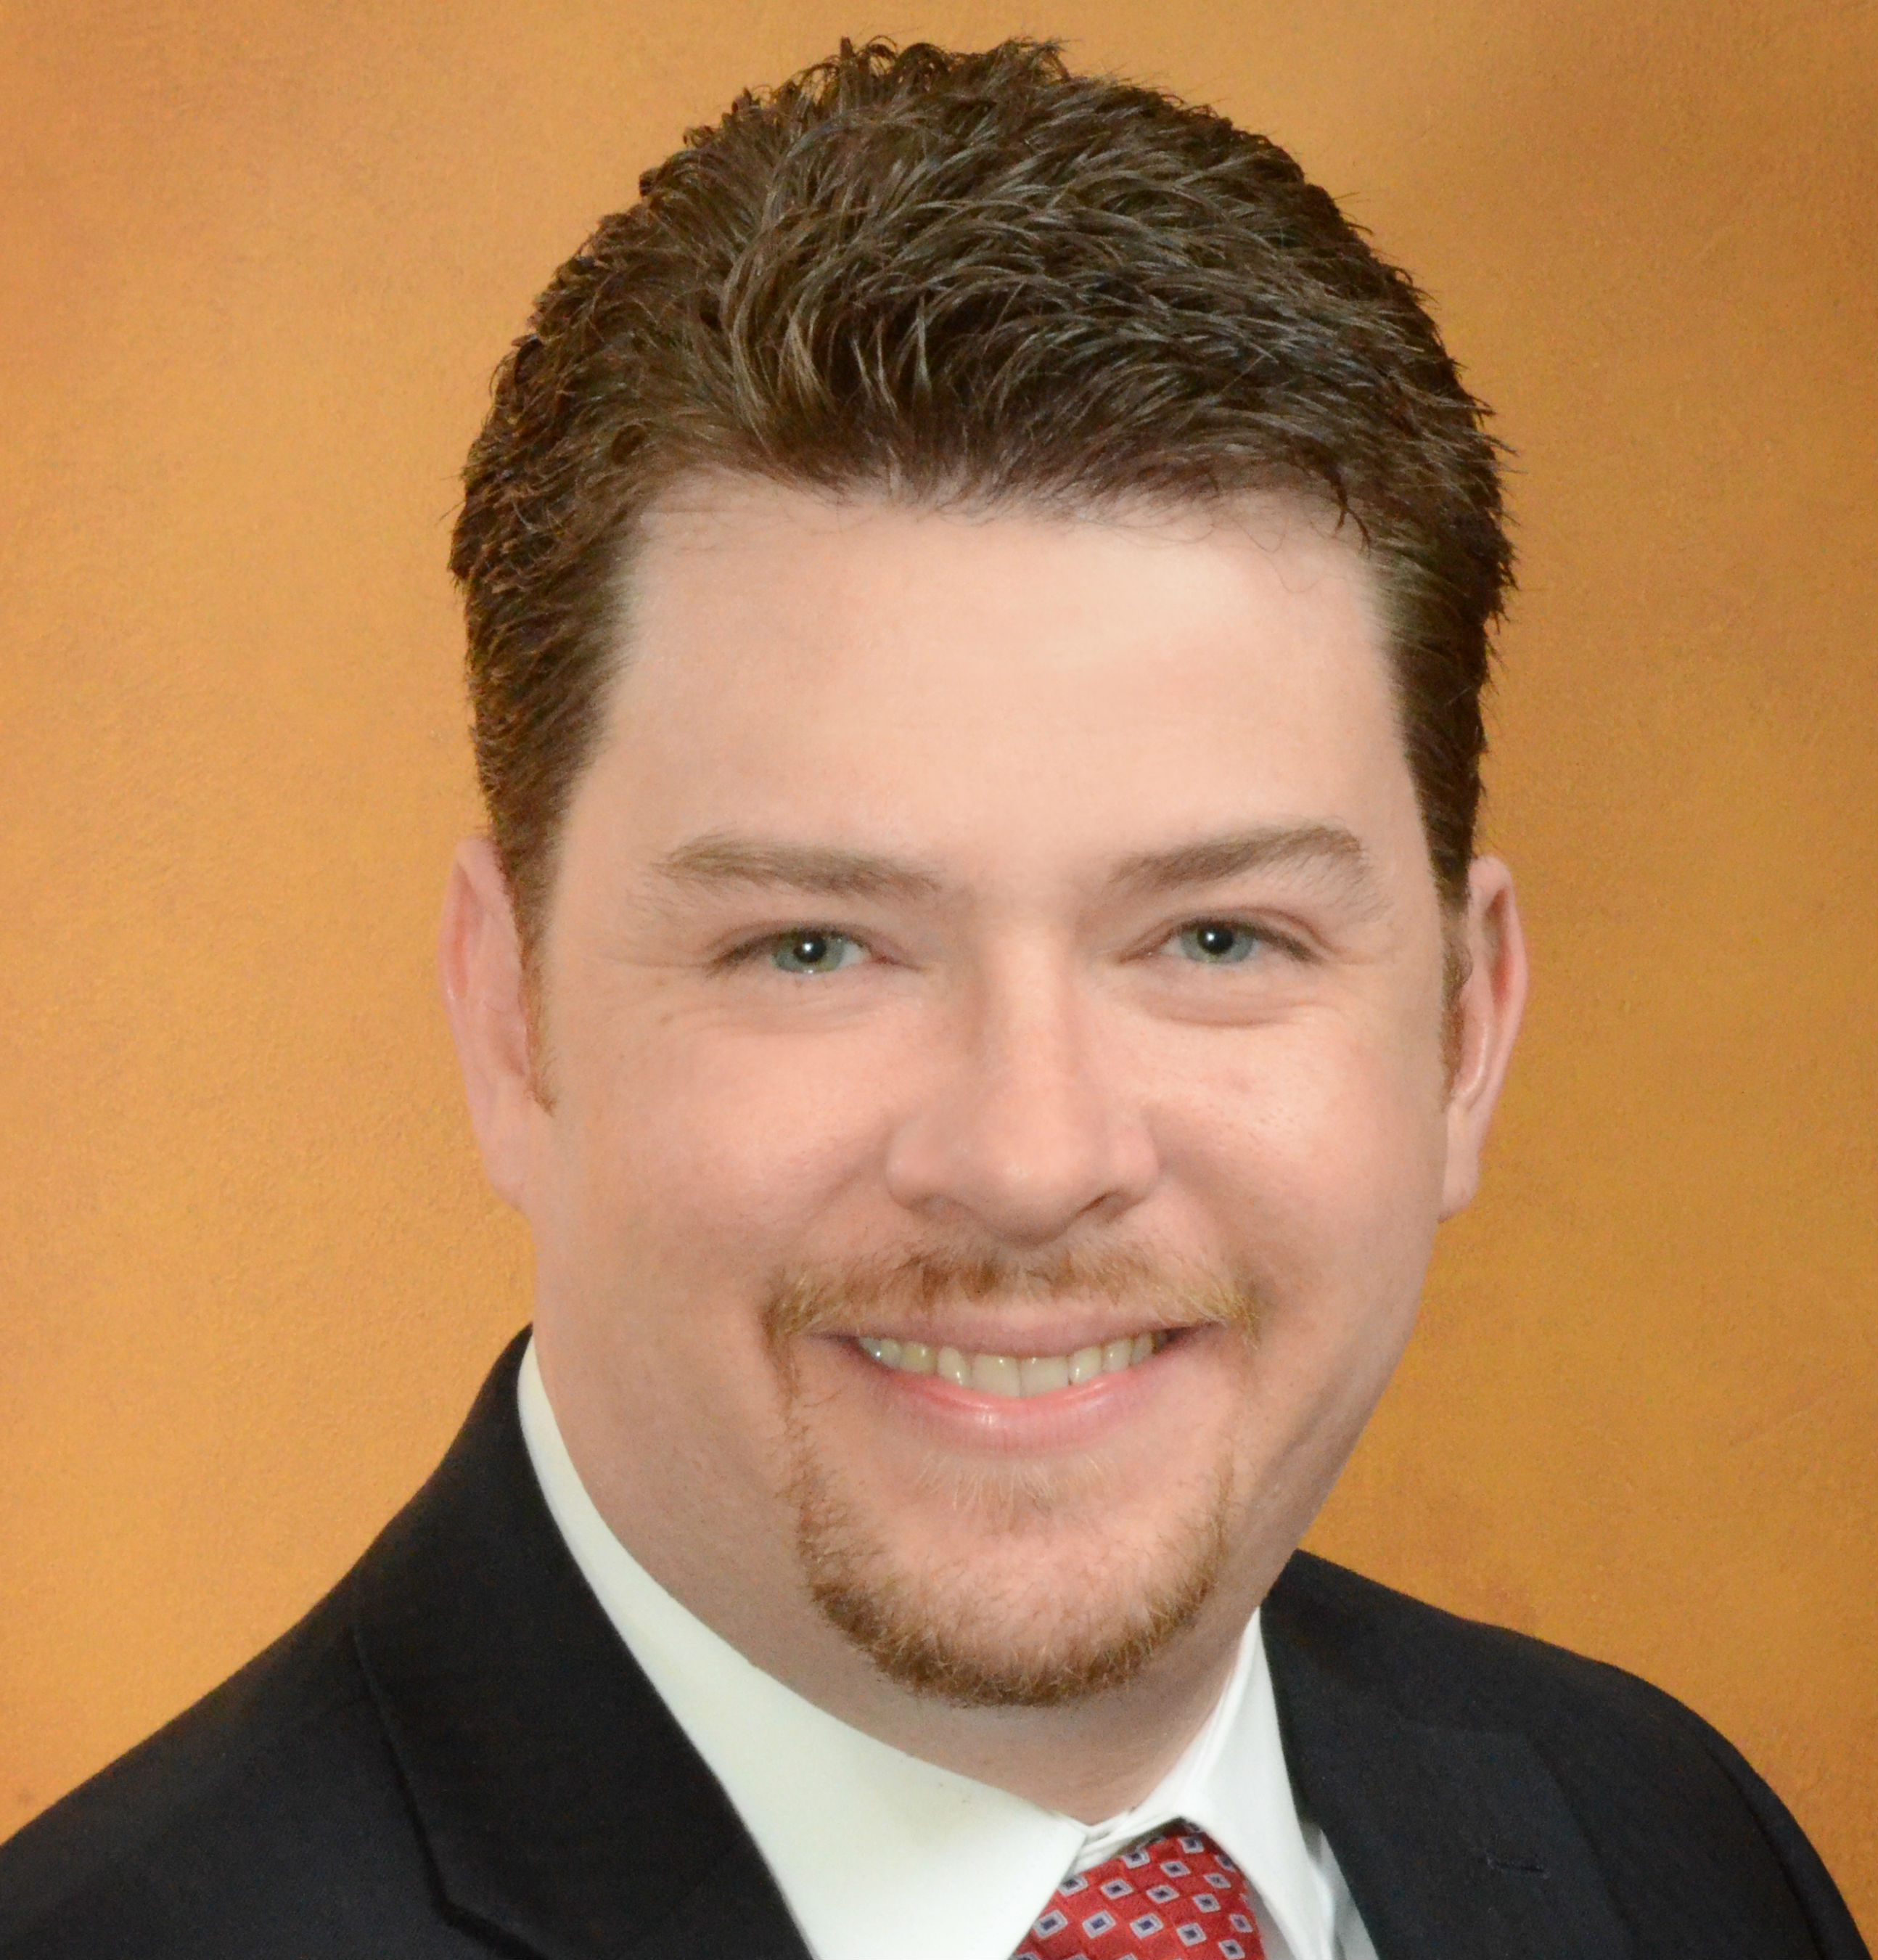 Chris Rondinelli, financial advisor Moon Township PA